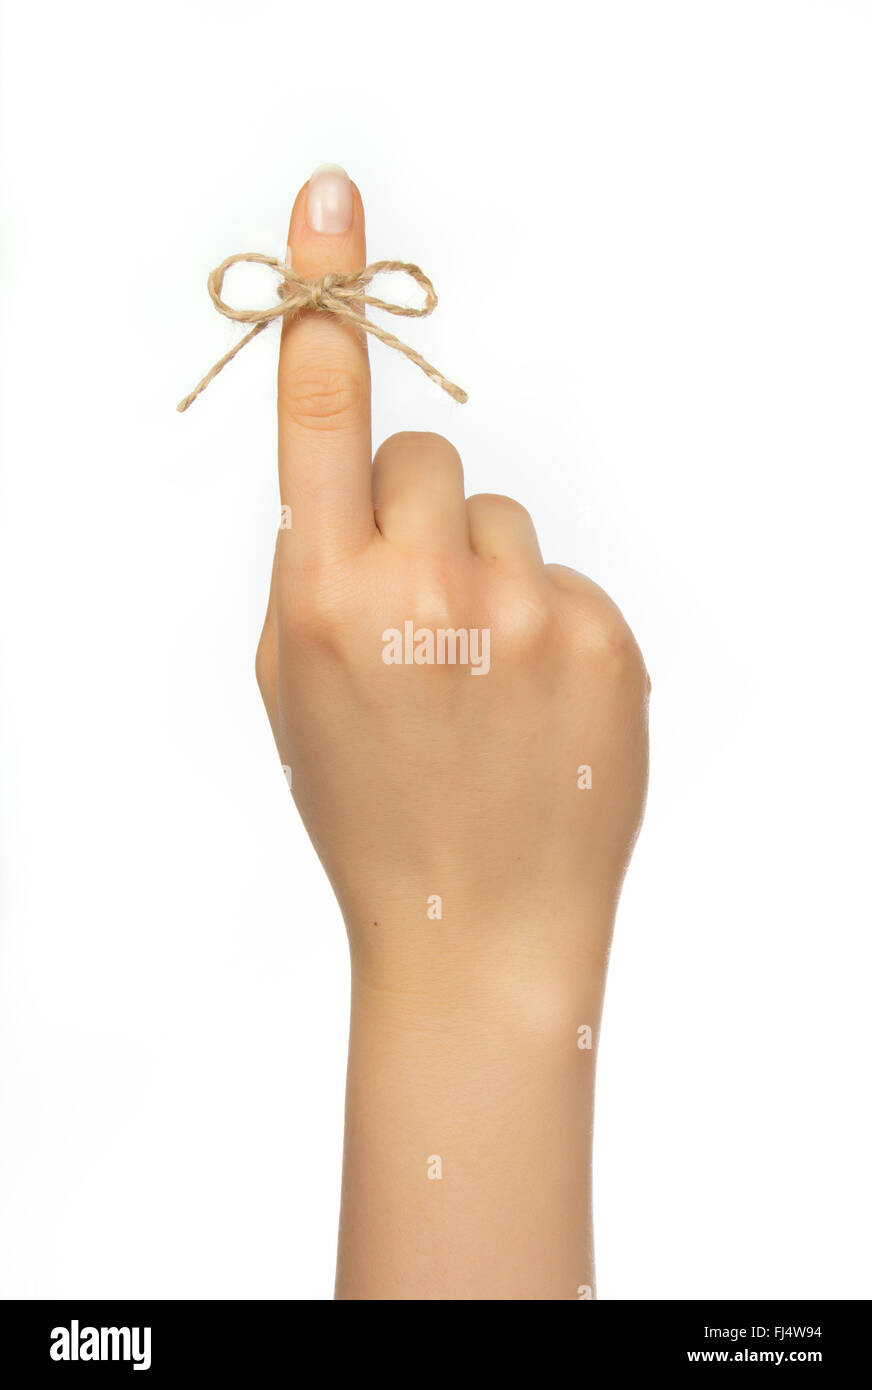 Woman's hand  with reminder string around pointing finger - Stock Image